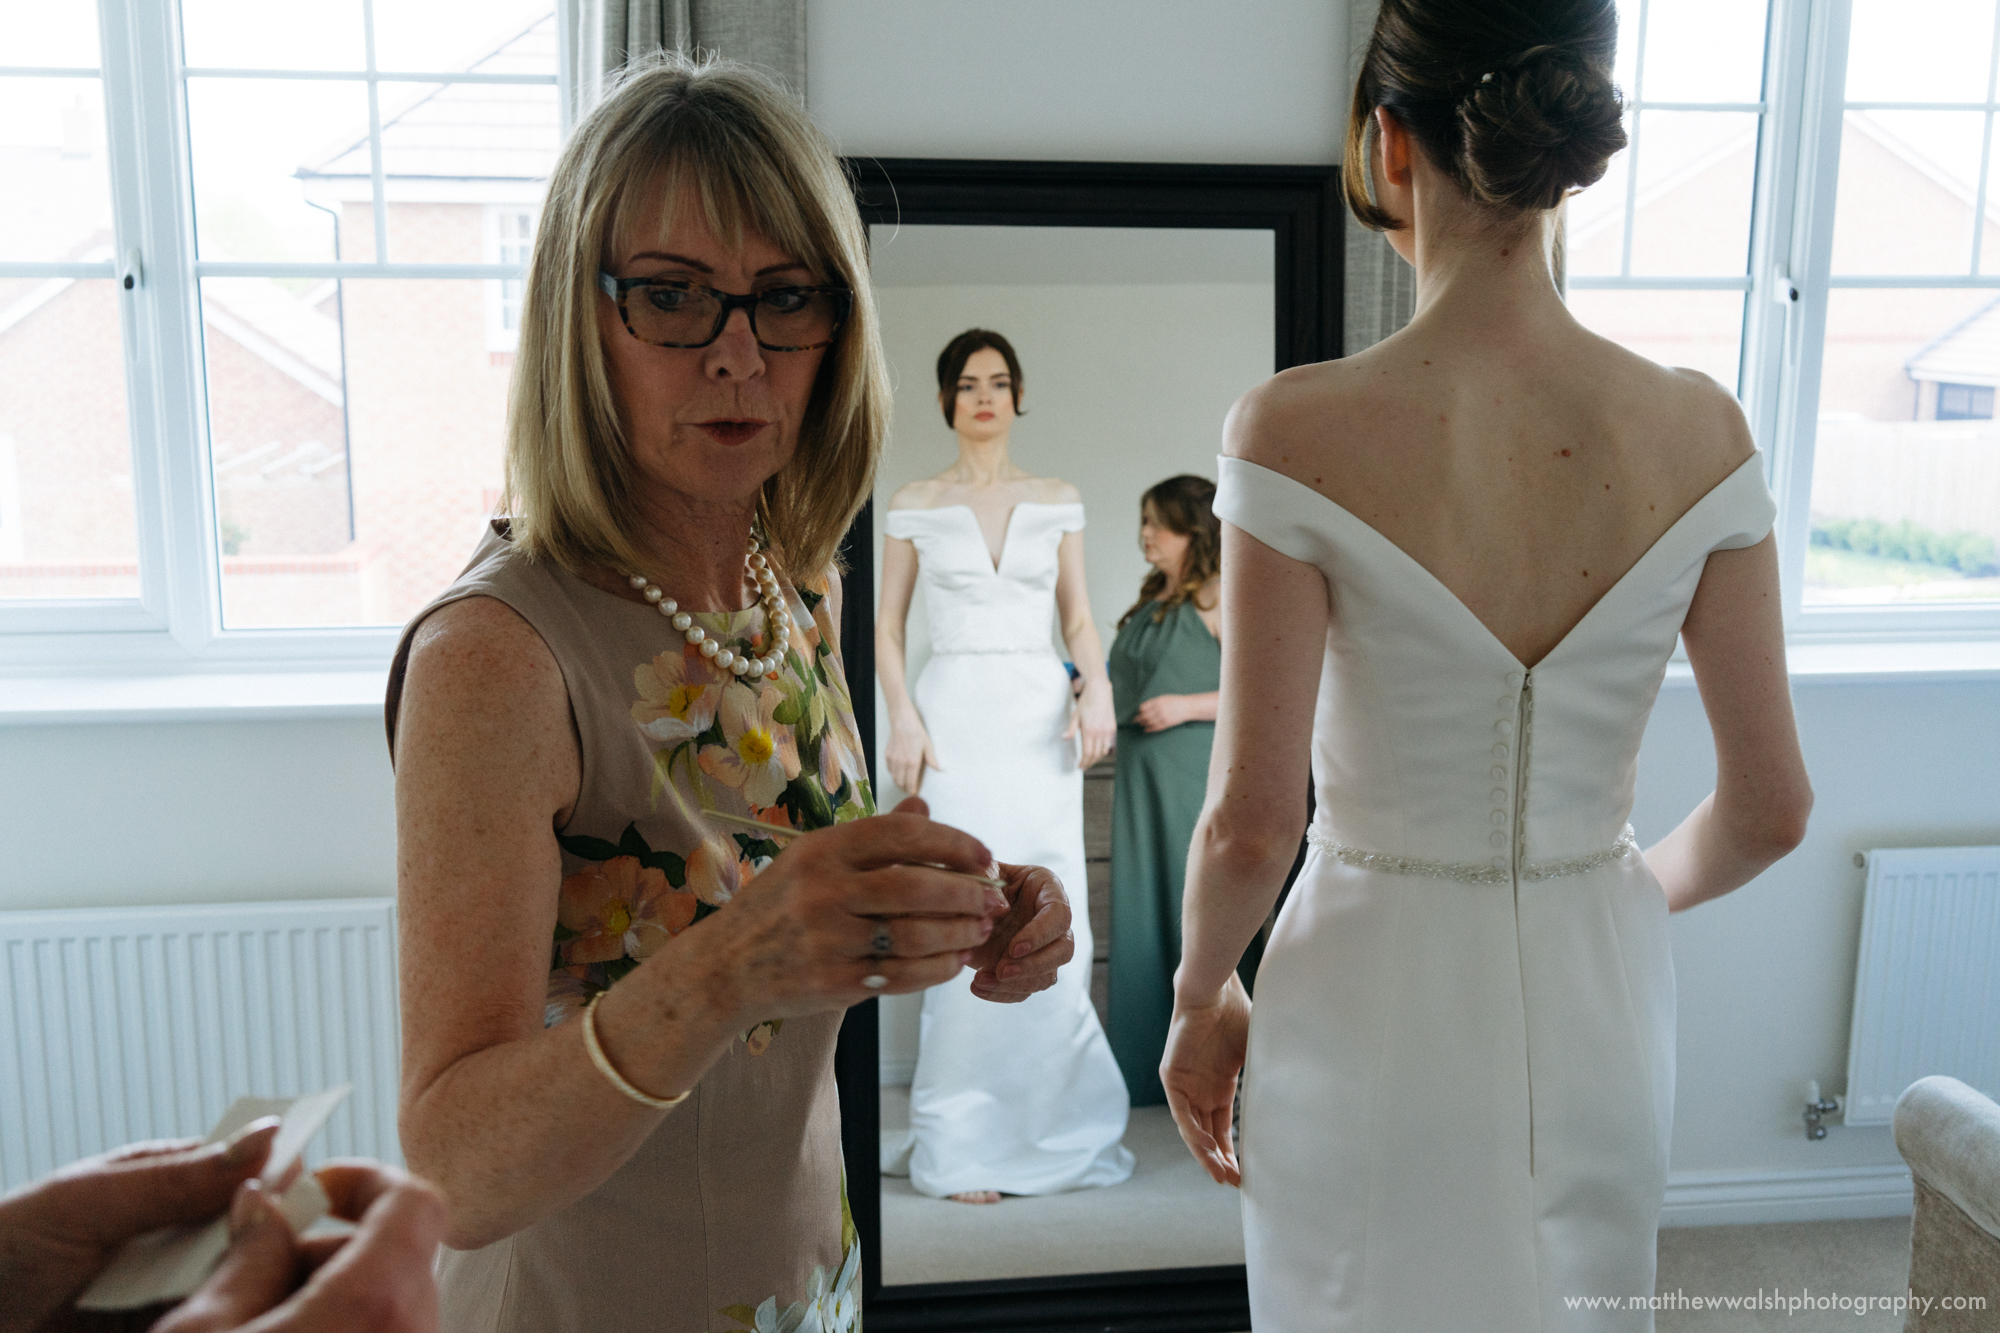 The mother of the bride helps her daughter to put her dress on in keeping with tradition